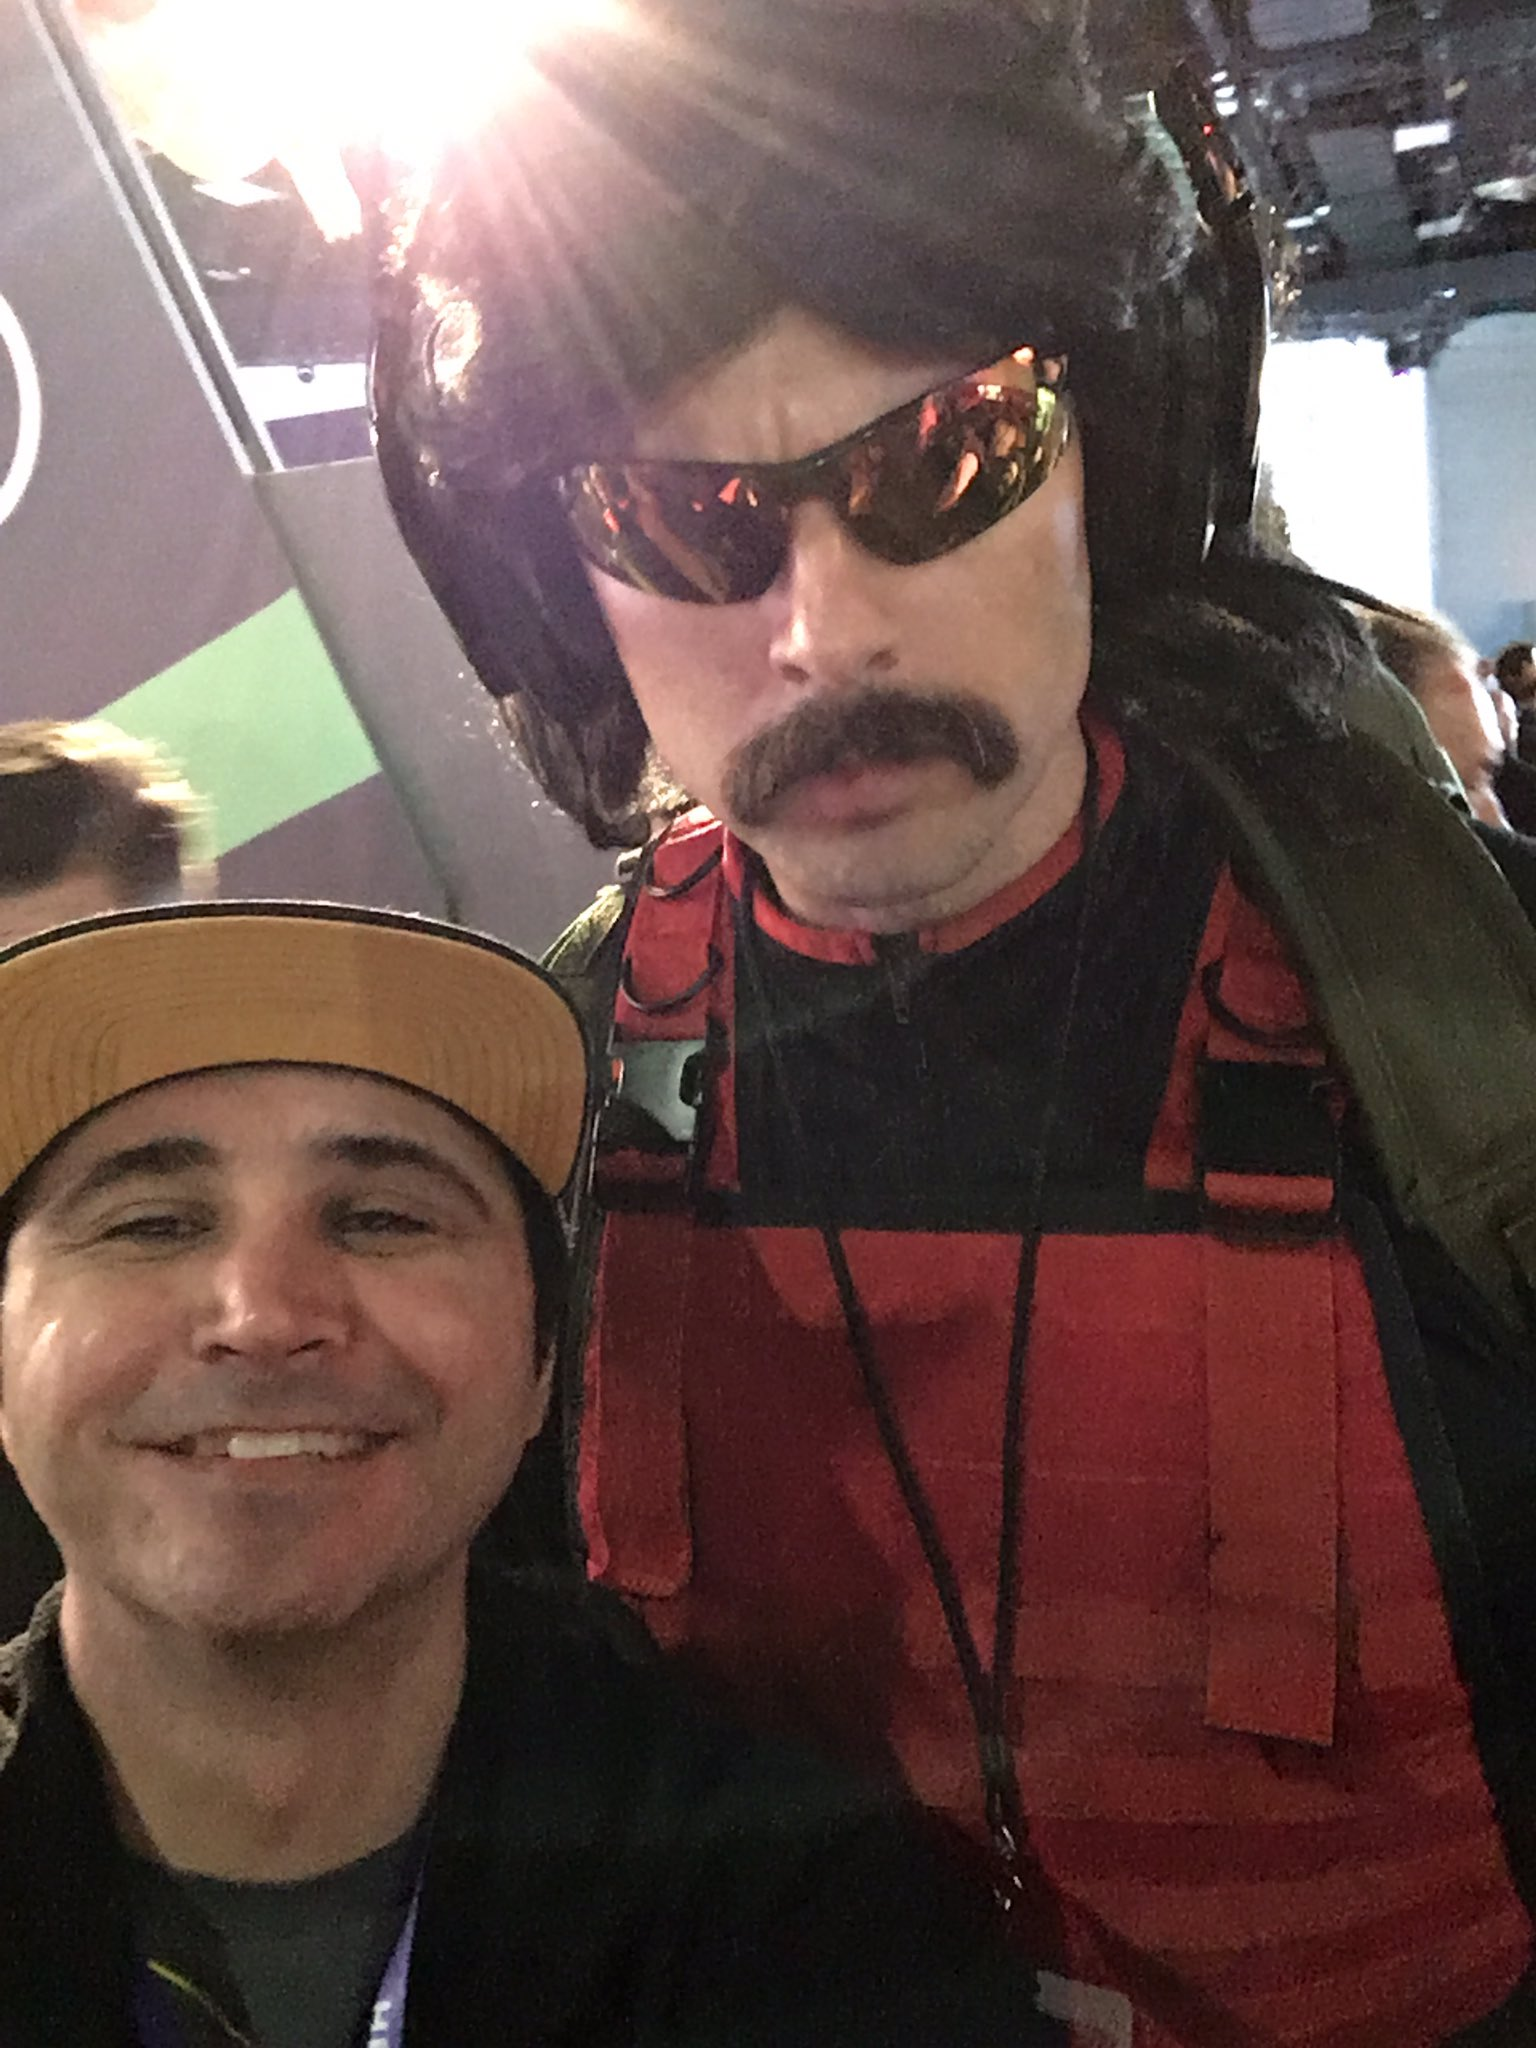 Summit1g On Twitter Met One Of The Funniest Guys On